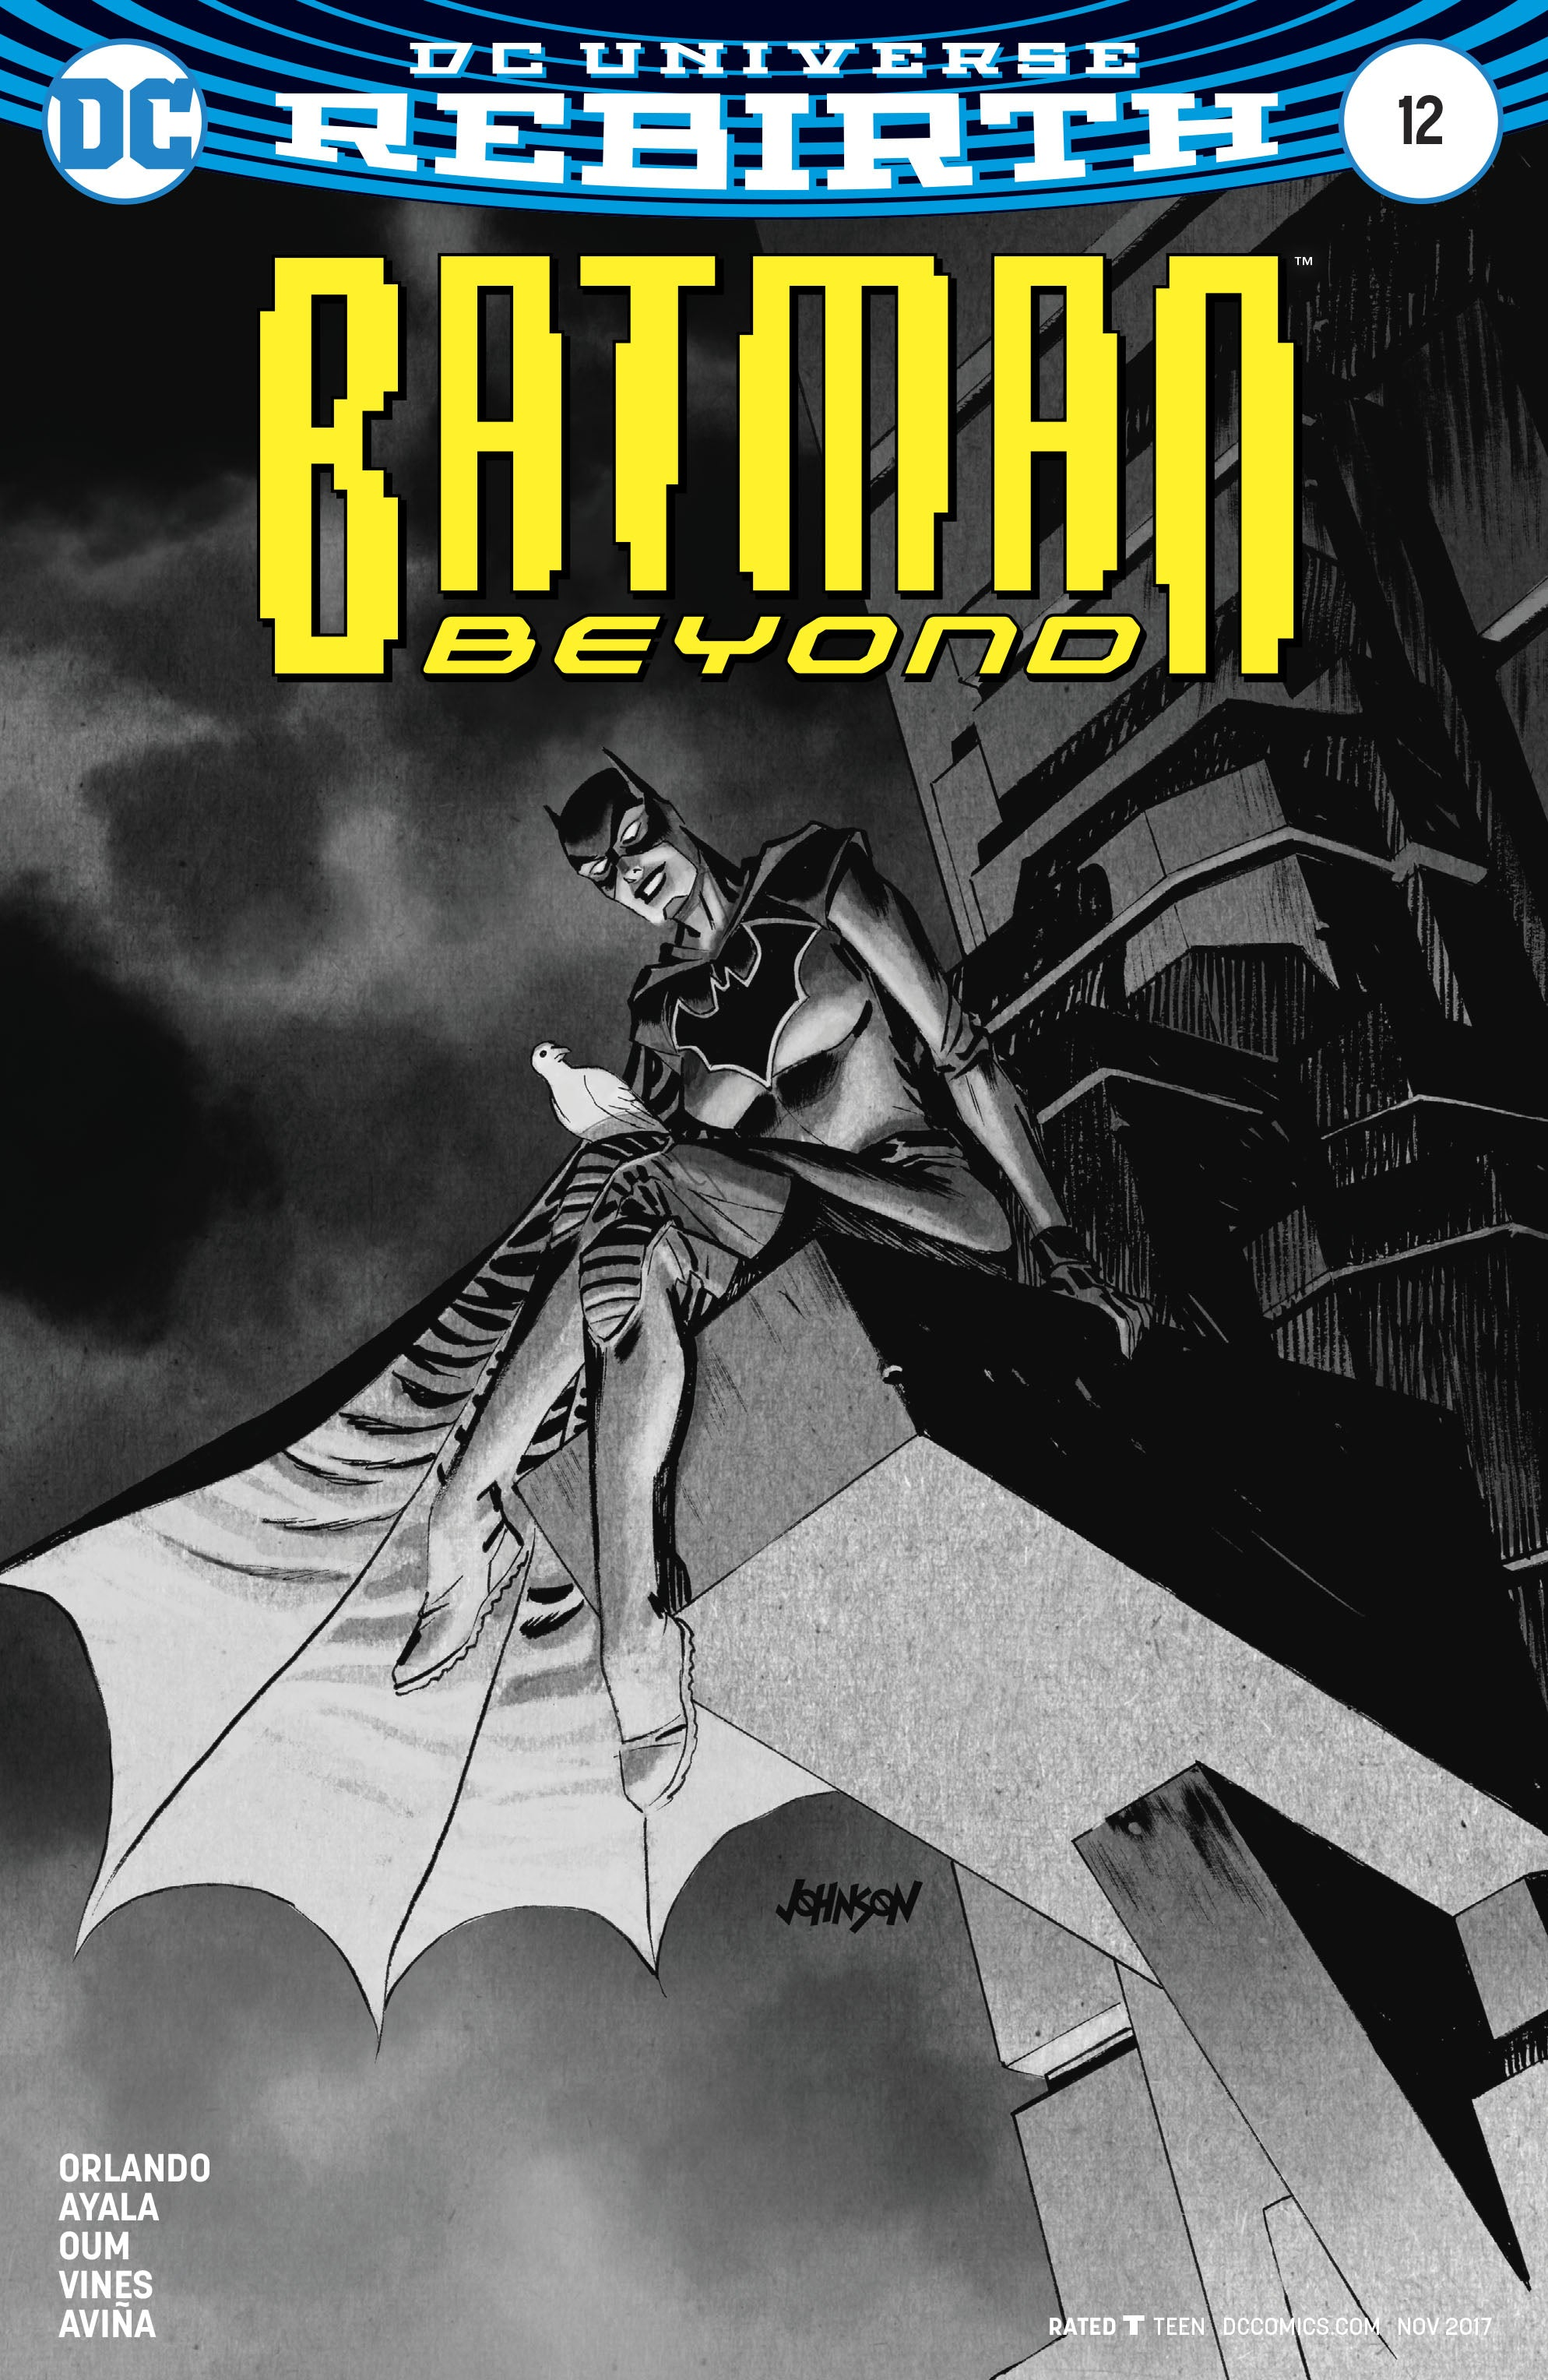 BATMAN BEYOND #12 VAR ED | Game Master's Emporium (The New GME)